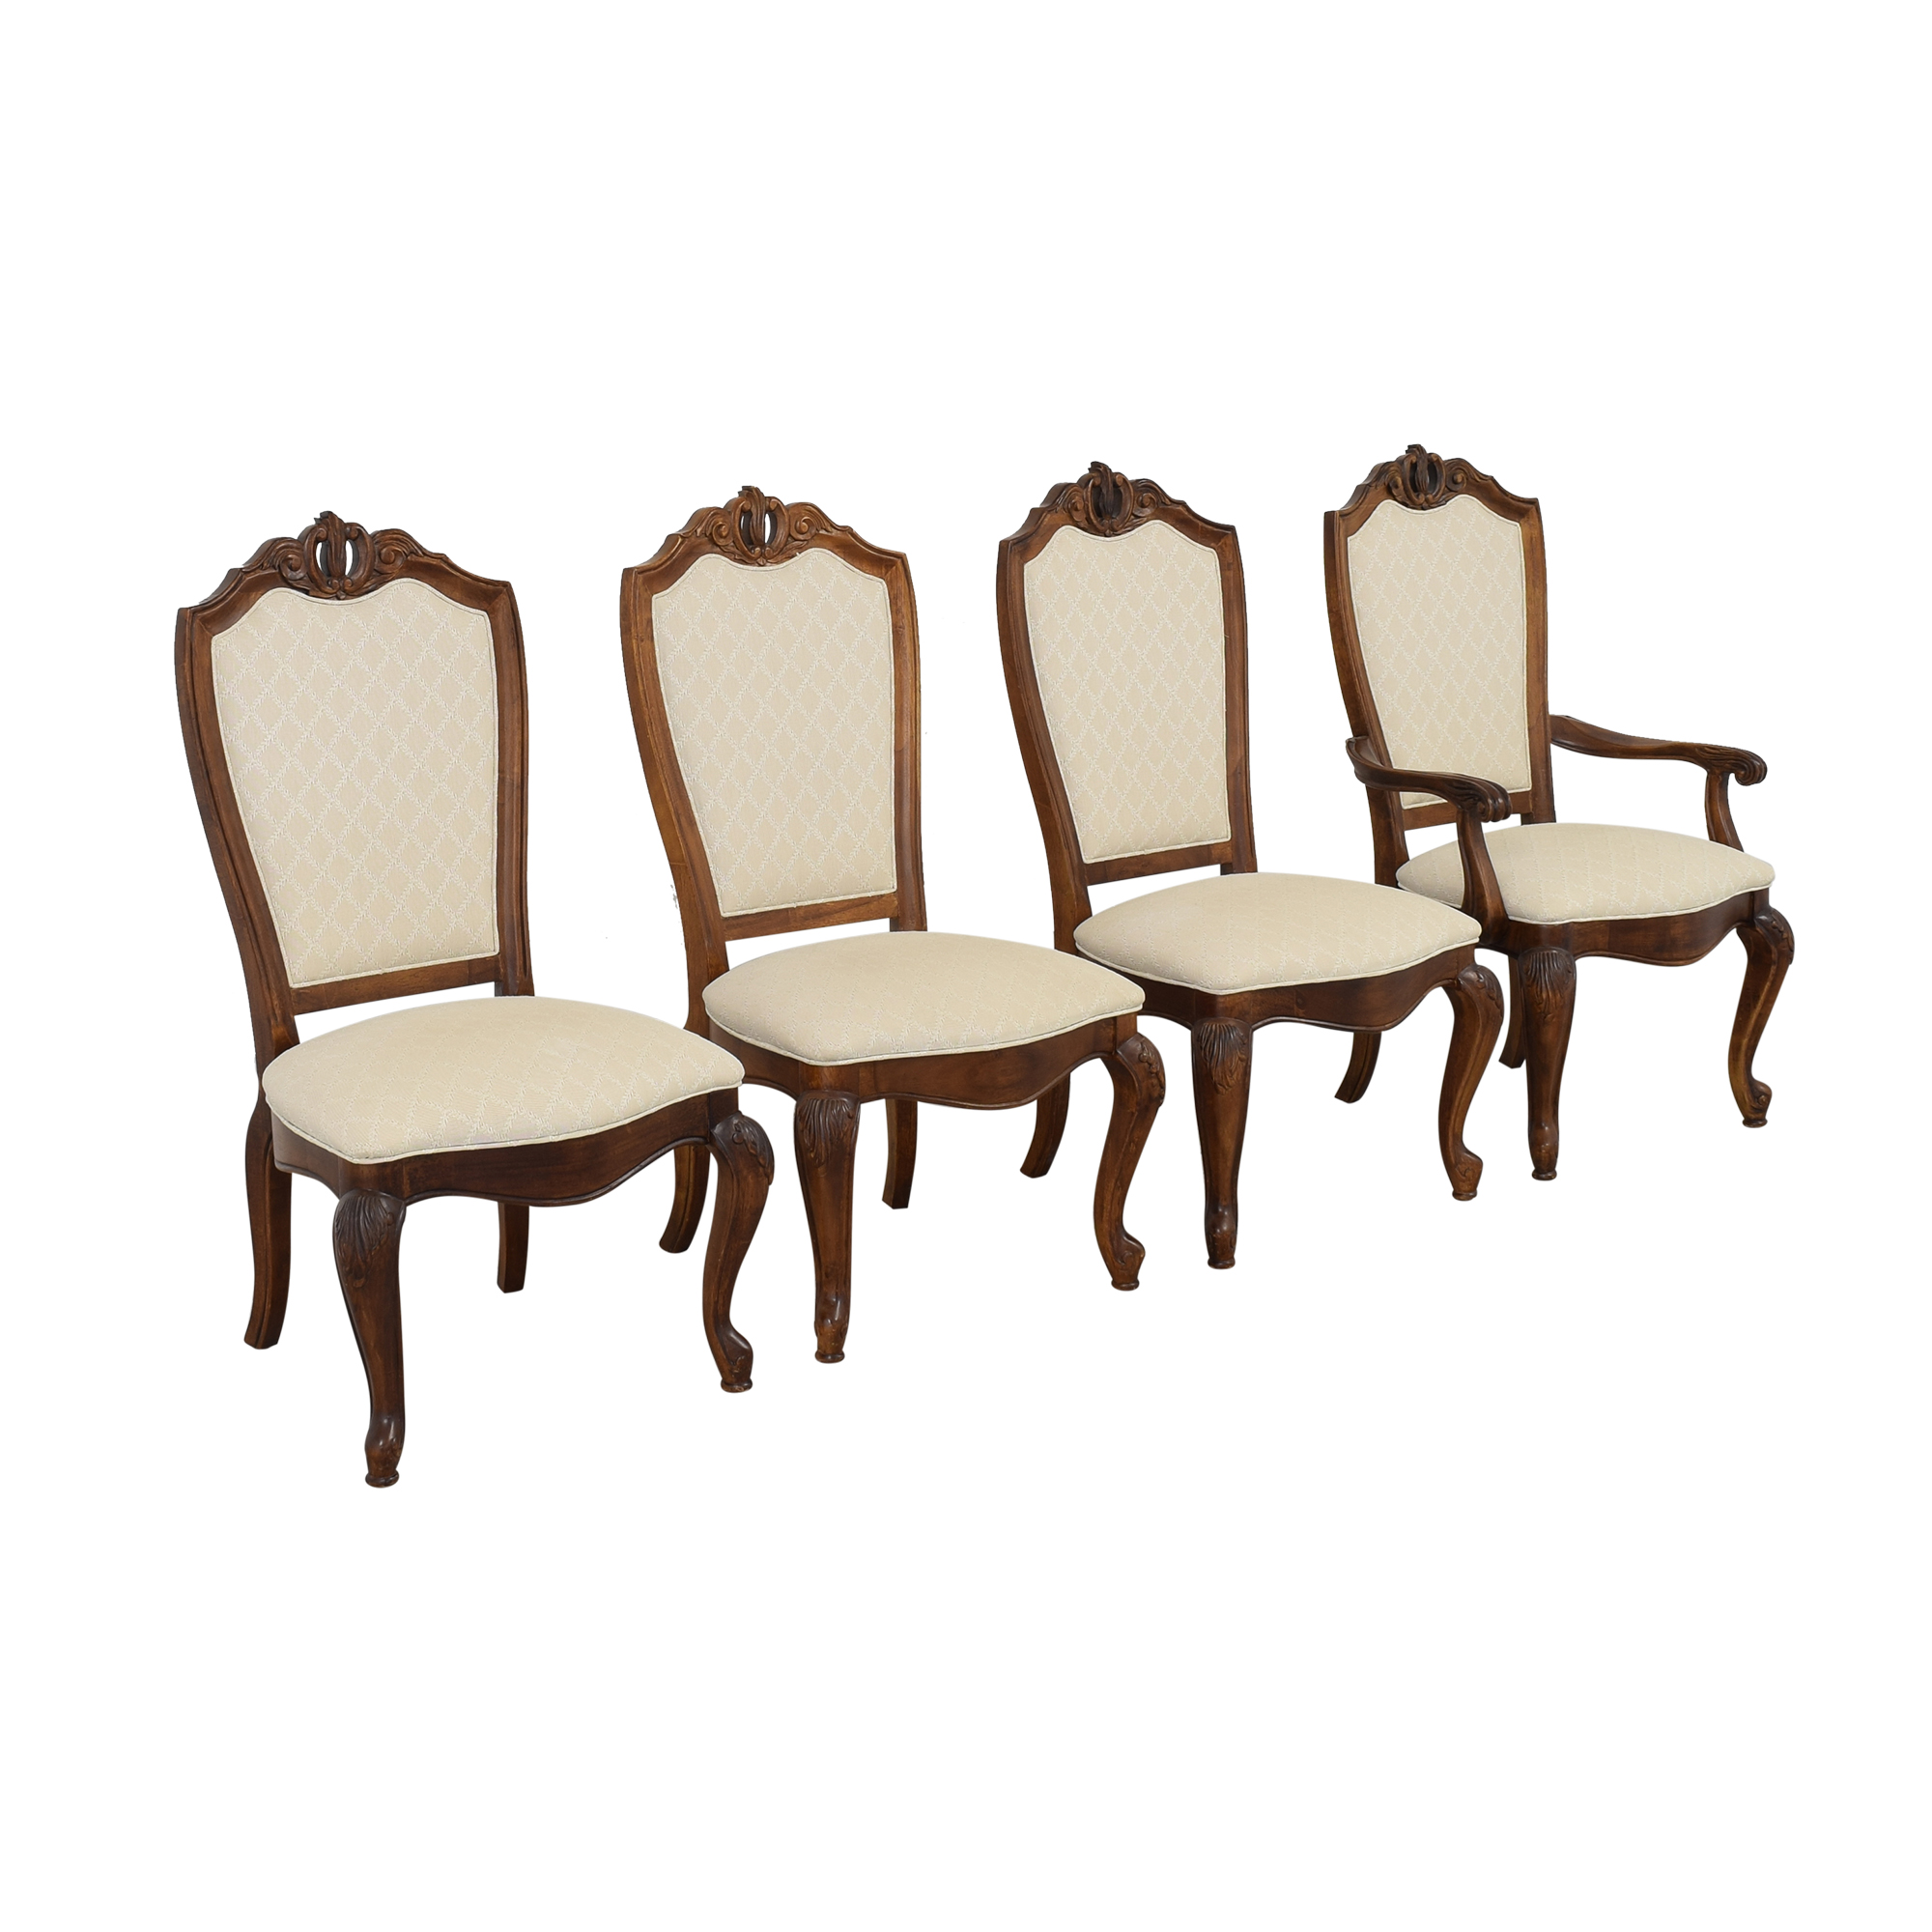 American Drew Bob Mackie for American Drew Dining Chairs ma